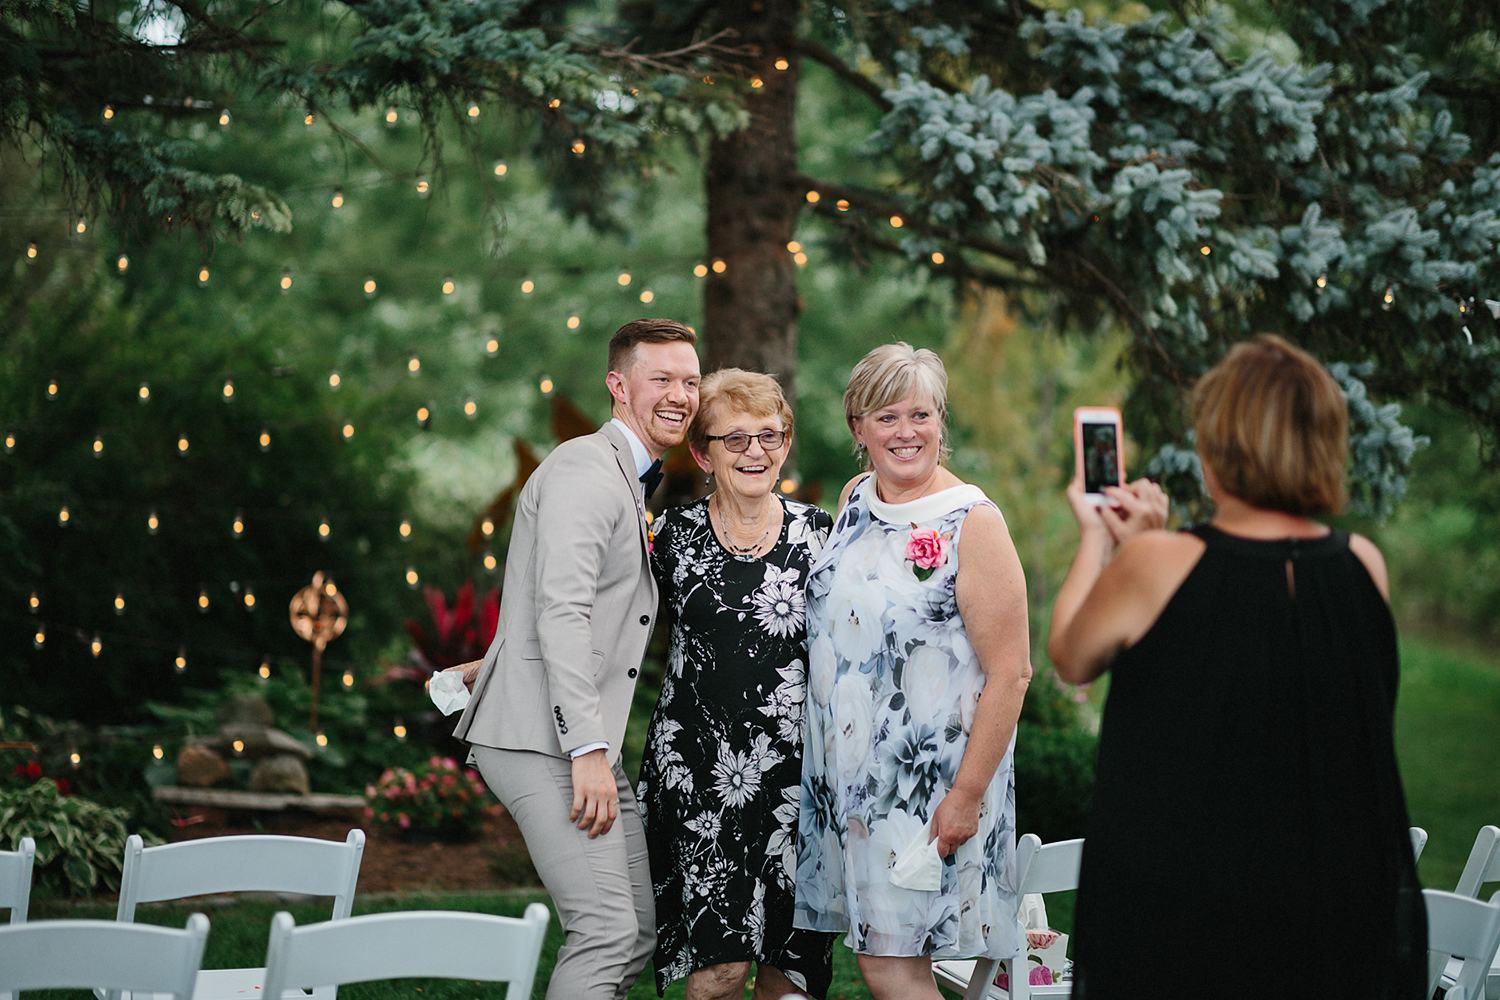 Backyard-family-intimate-cottage-wedding-chatum-kent-toronto-ontario-film-photographer-ryanne-hollies-photography-diy-string-lights-and-lanterns-reception-dinner-candid-moments-groom-grandma-mom-photobomb.jpg